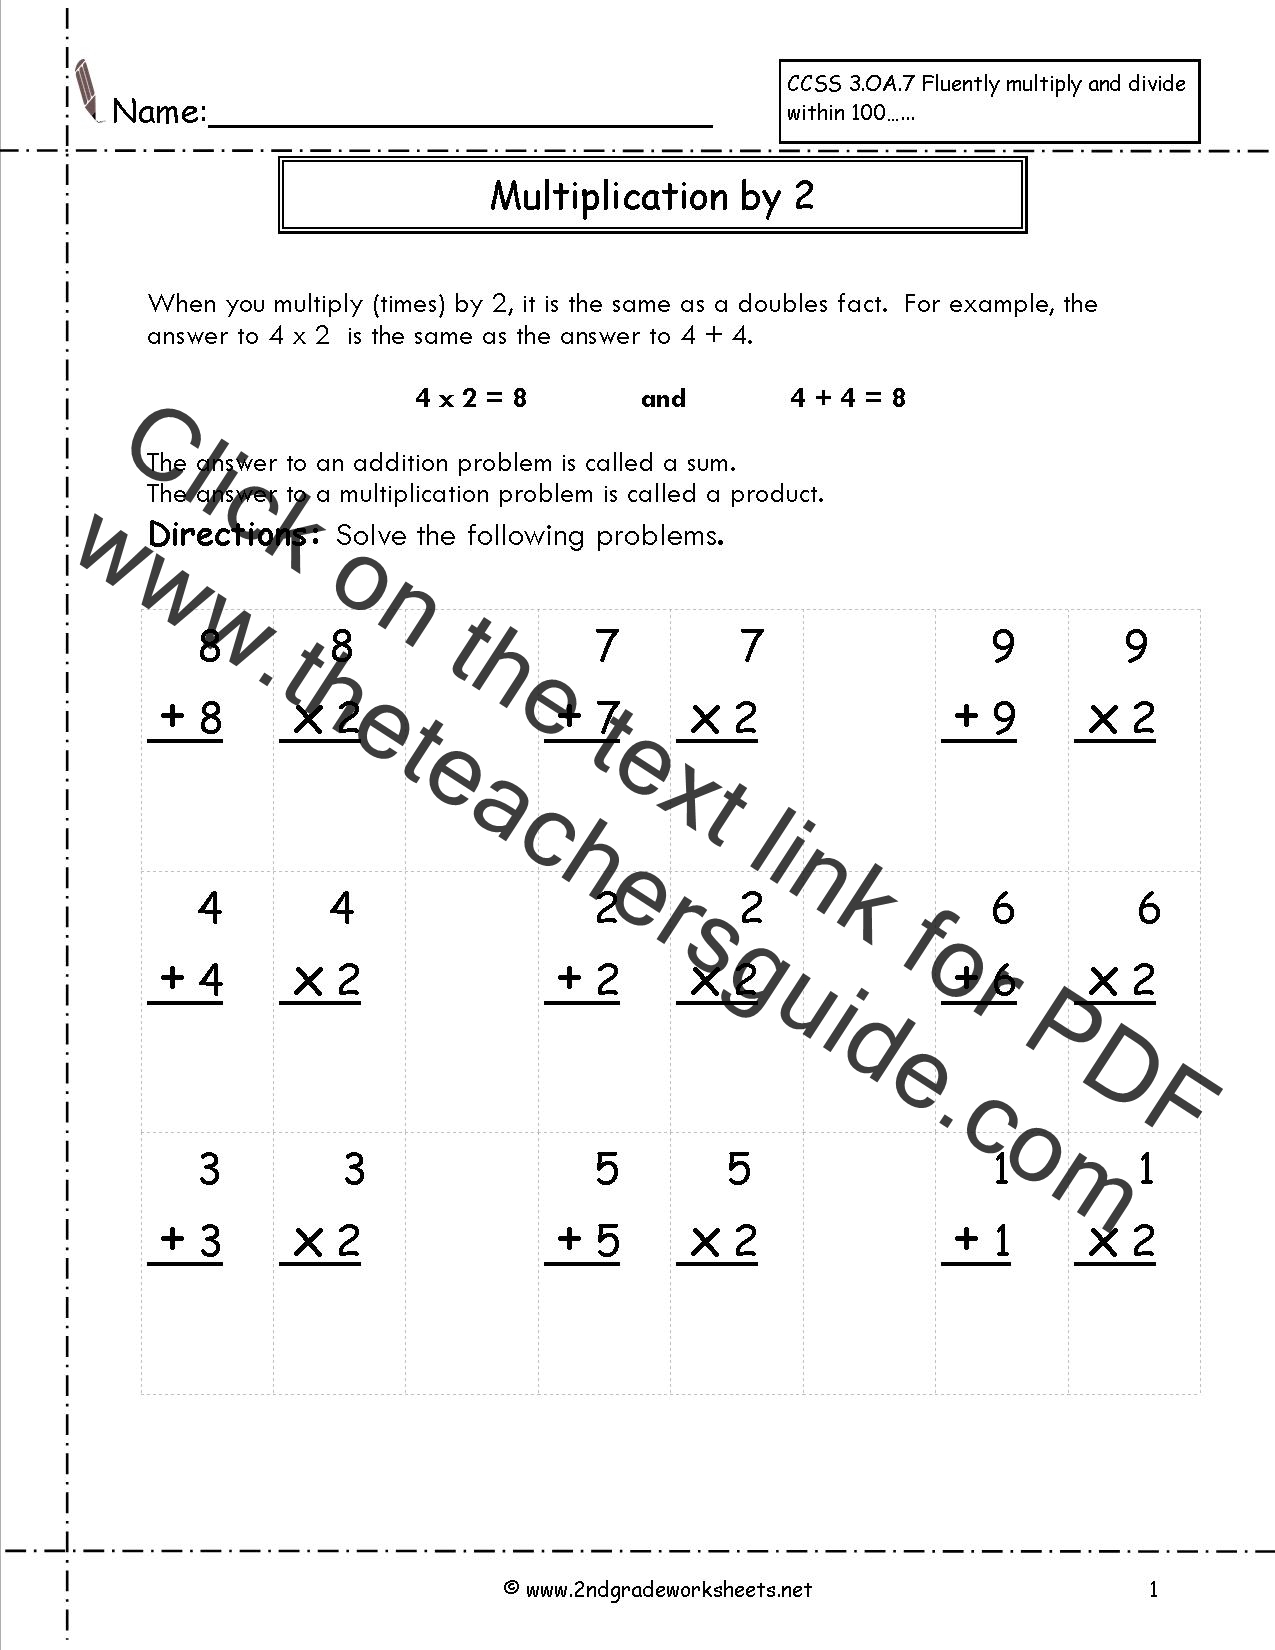 math worksheet : multiplication worksheets and printouts : Multiplication Worksheets By 2